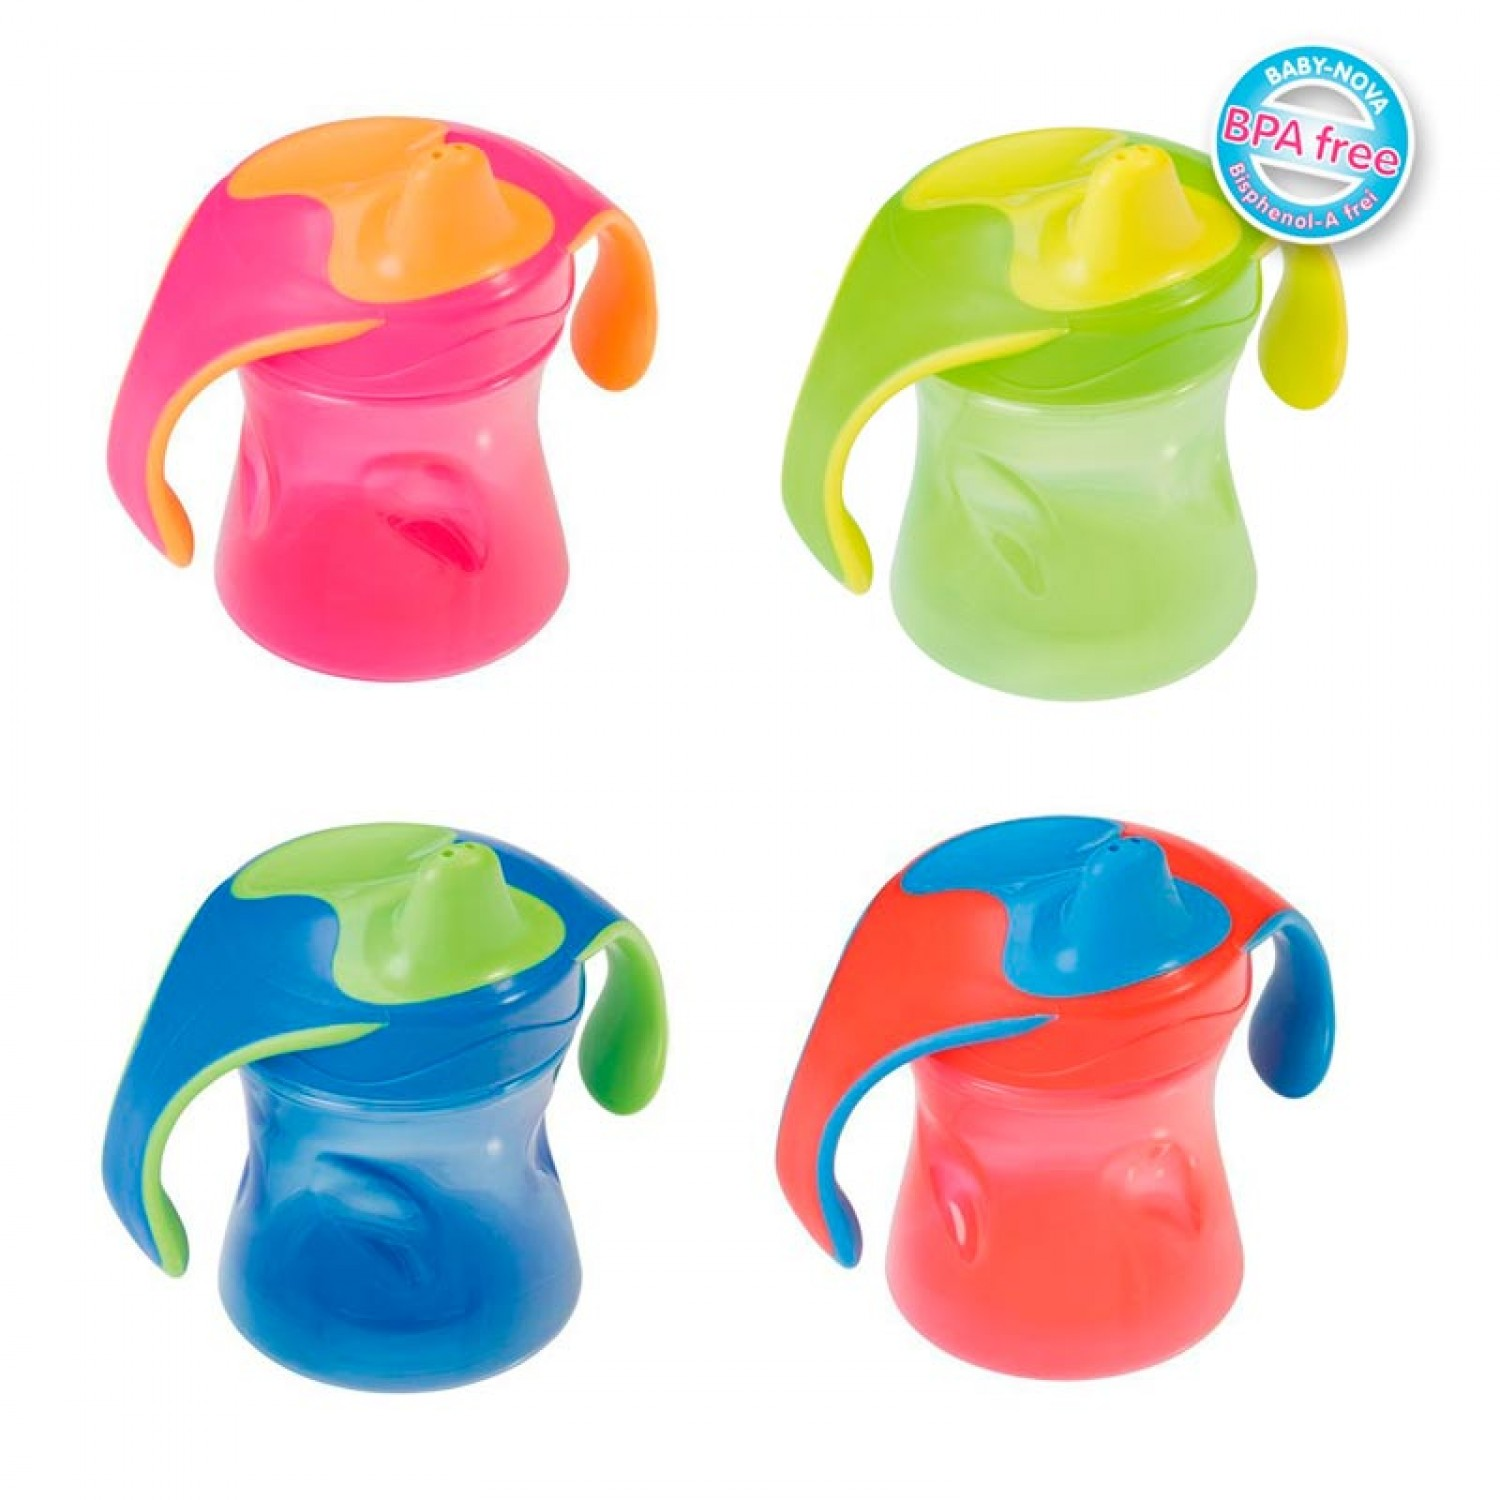 Trainer Cup 220 ml  green, pink, red, blue | Baby Nova